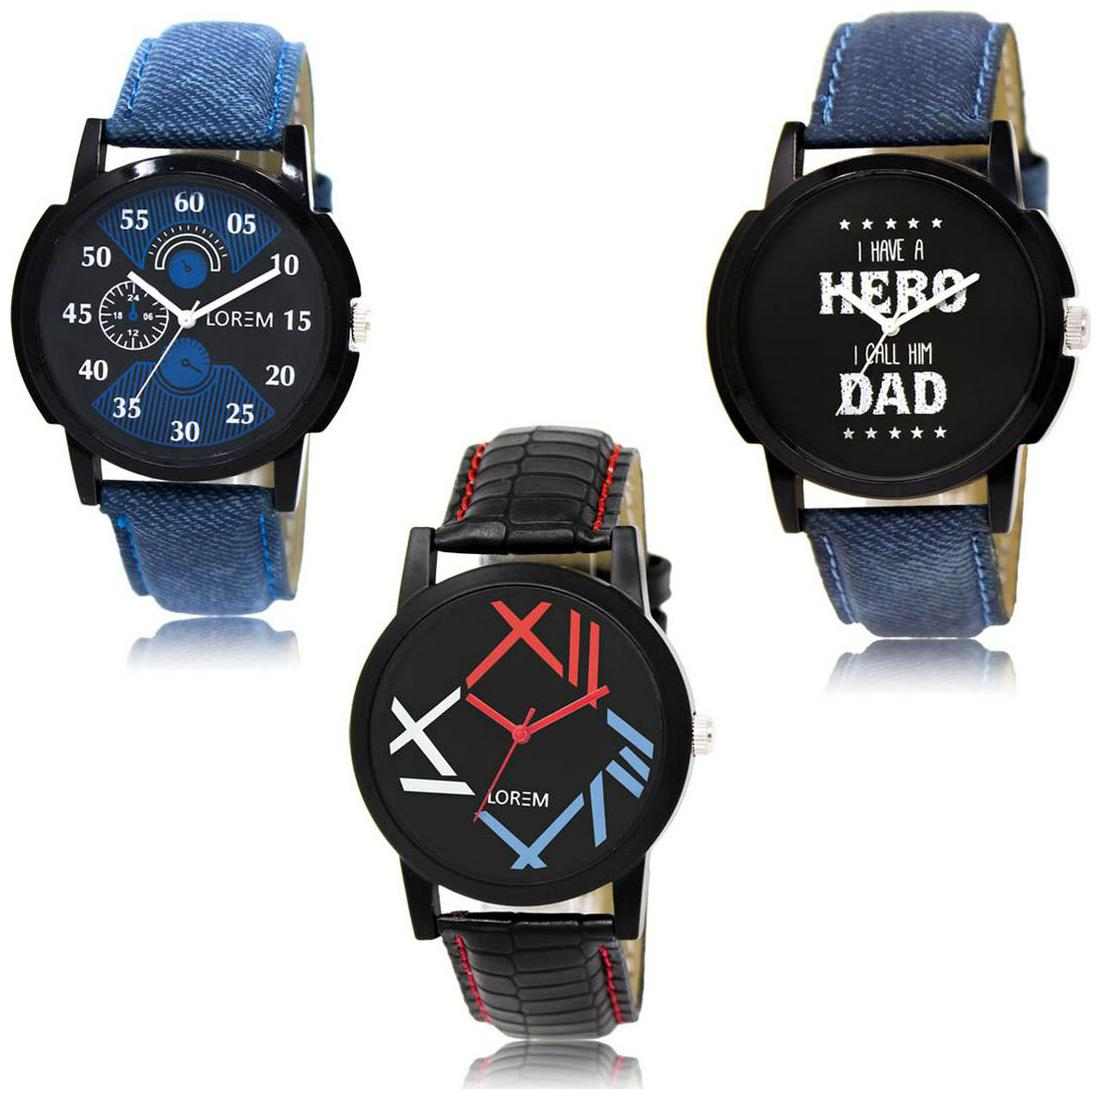 LOREM LK 02 07 12 Multi Color Exclusive Designer Pack of 3 For Men watches by Kaya